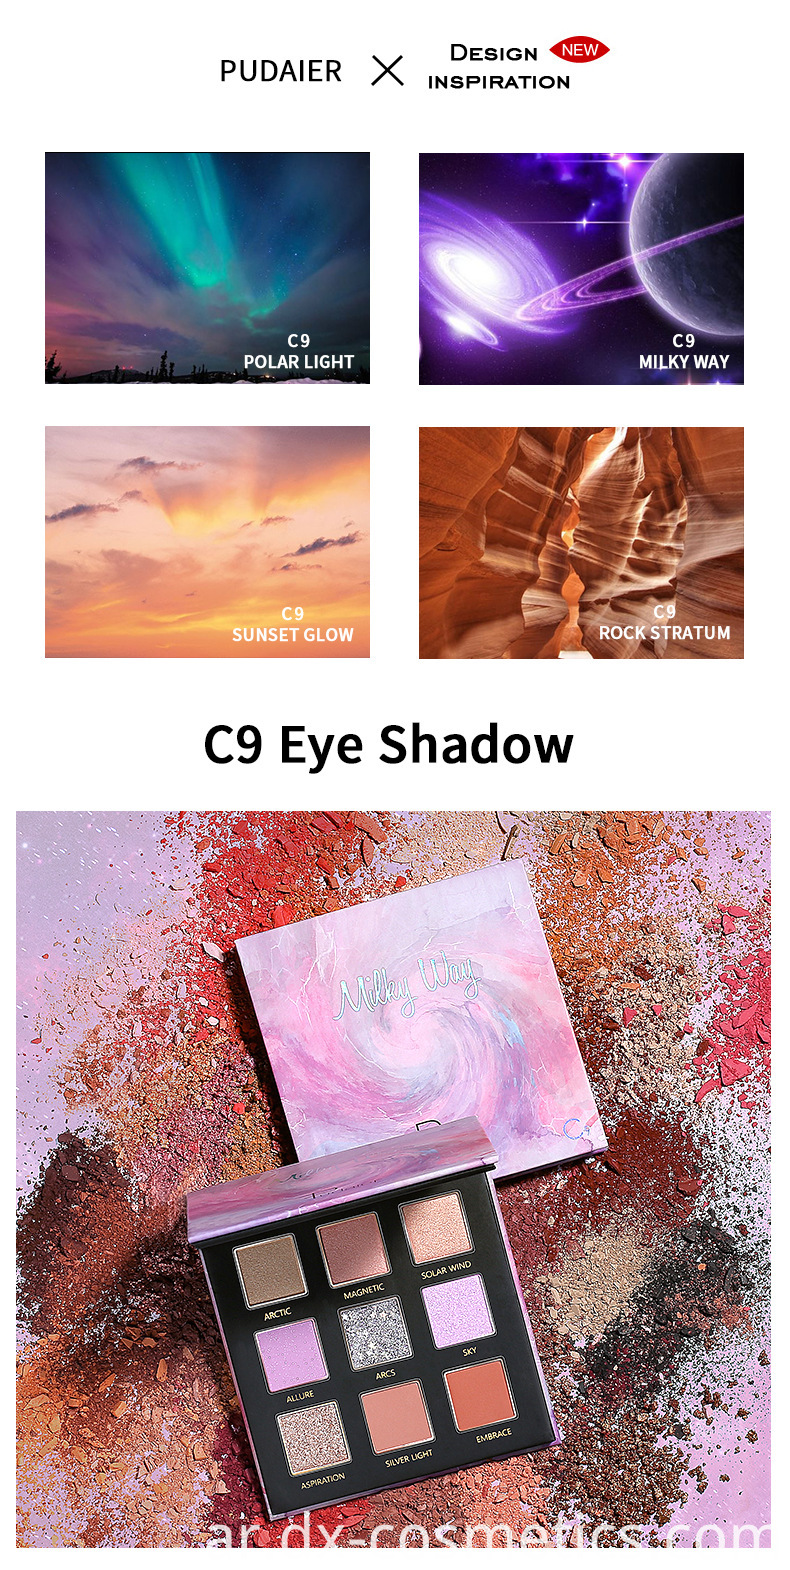 C9 Eye Shadow style 2